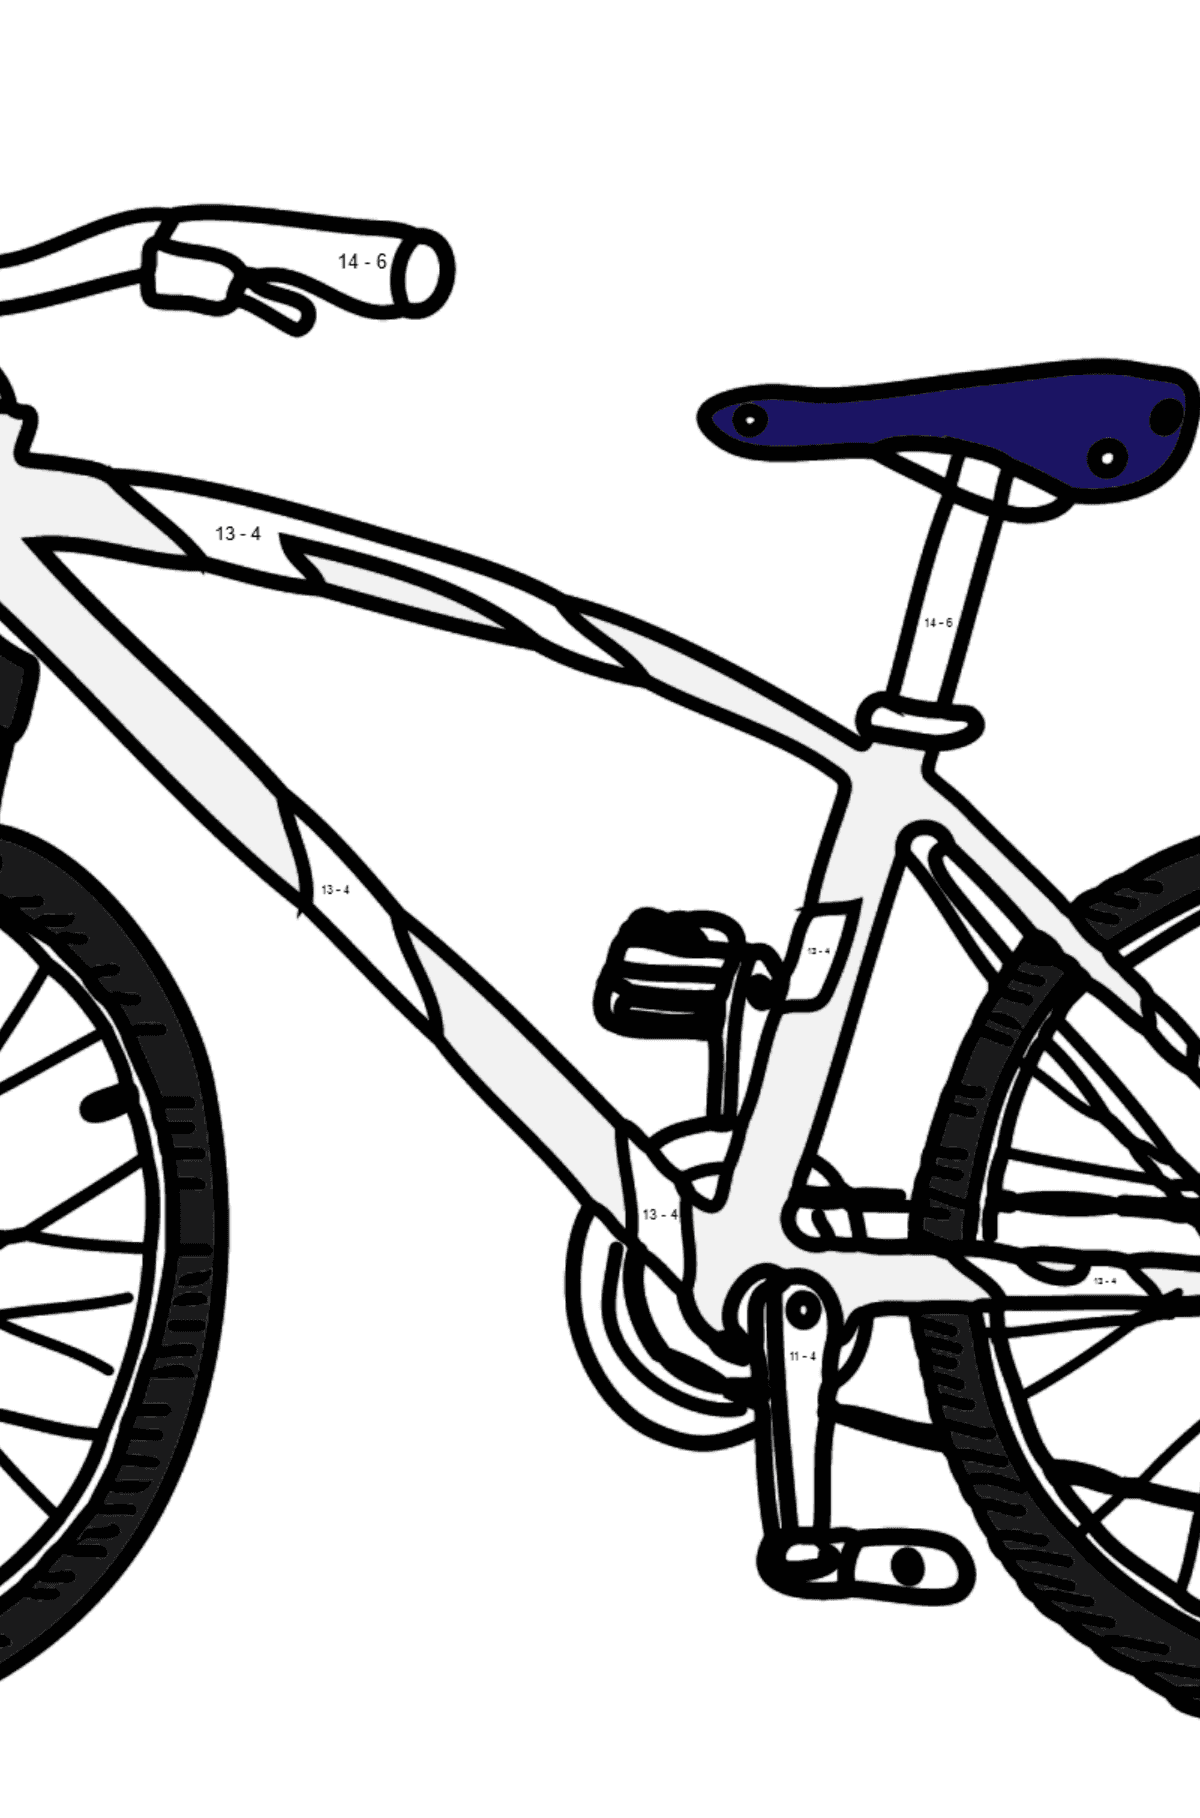 Coloring Page - A Sport Bike - Math Coloring - Subtraction for Kids